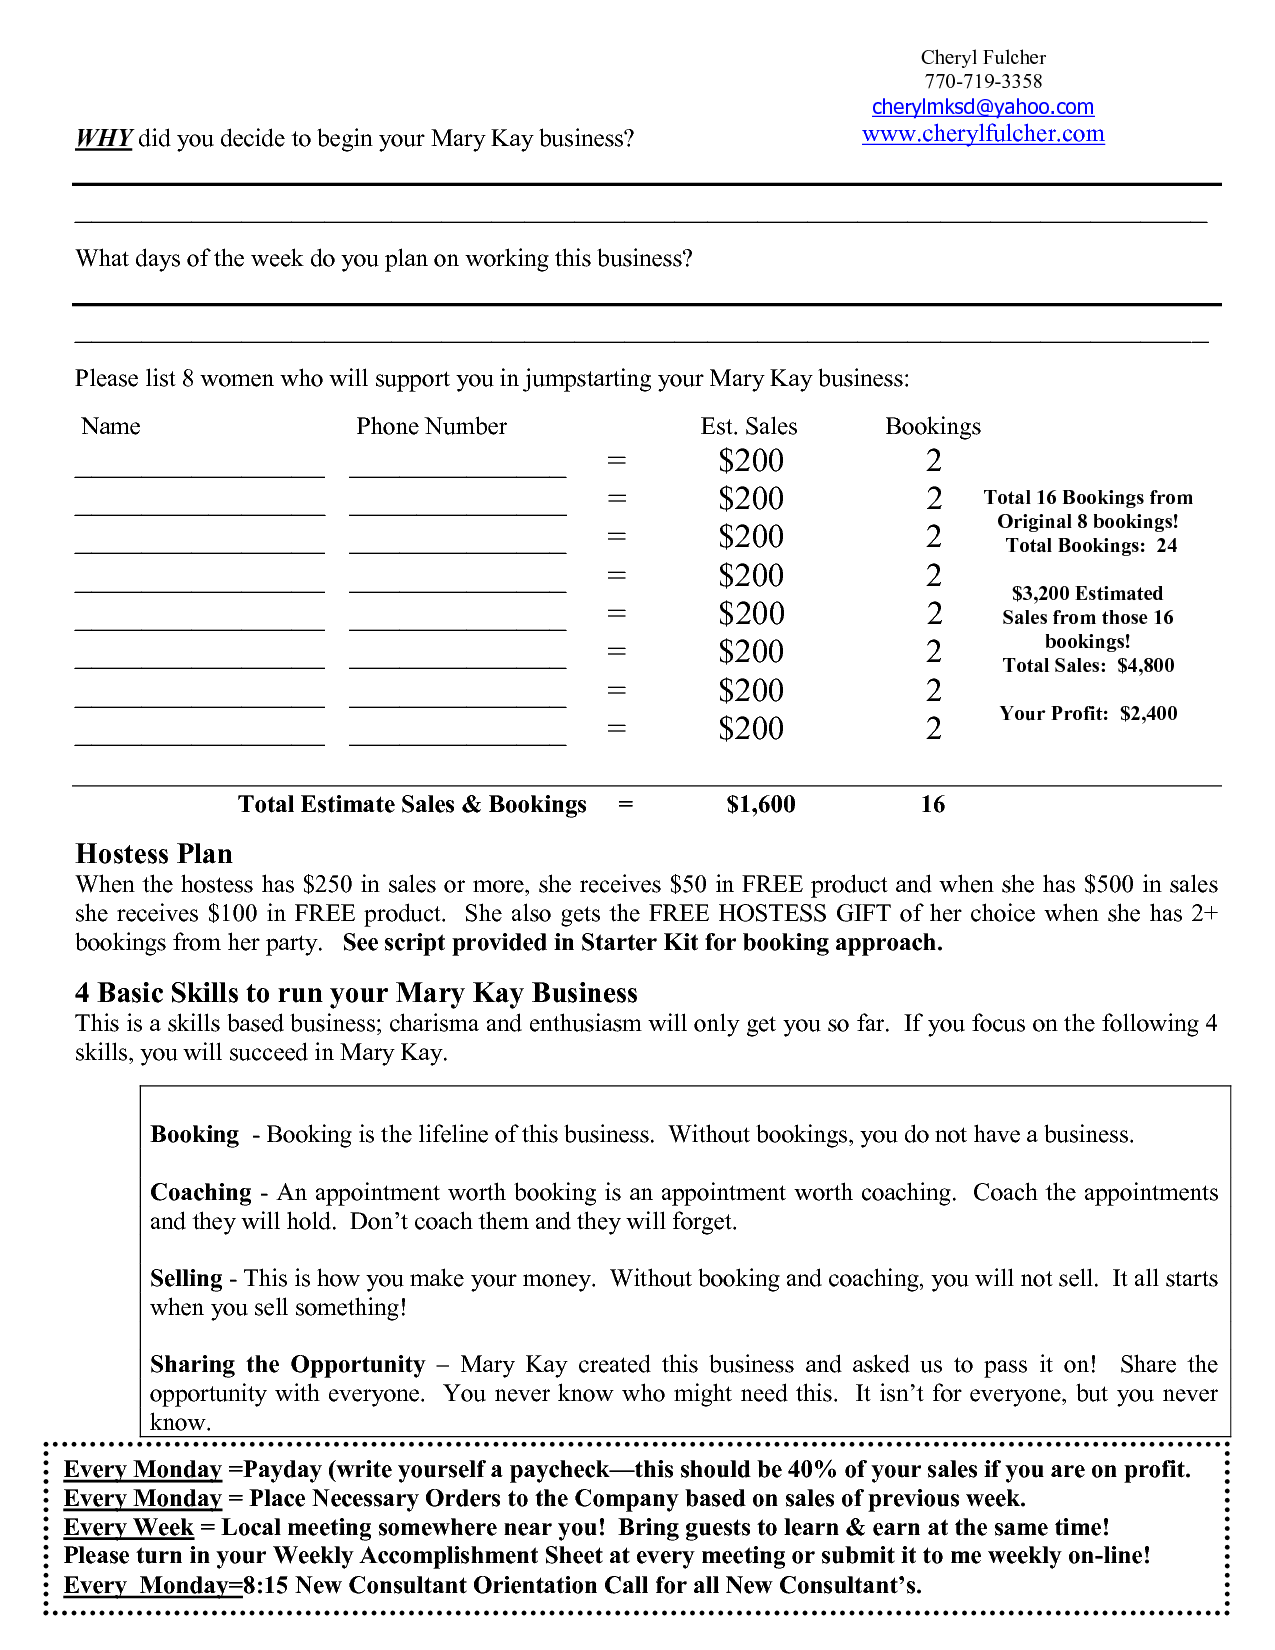 mary kay business plan | Mary Kay Weekly Plan Sheet | MK Business Plan | Pinterest | Mary kay